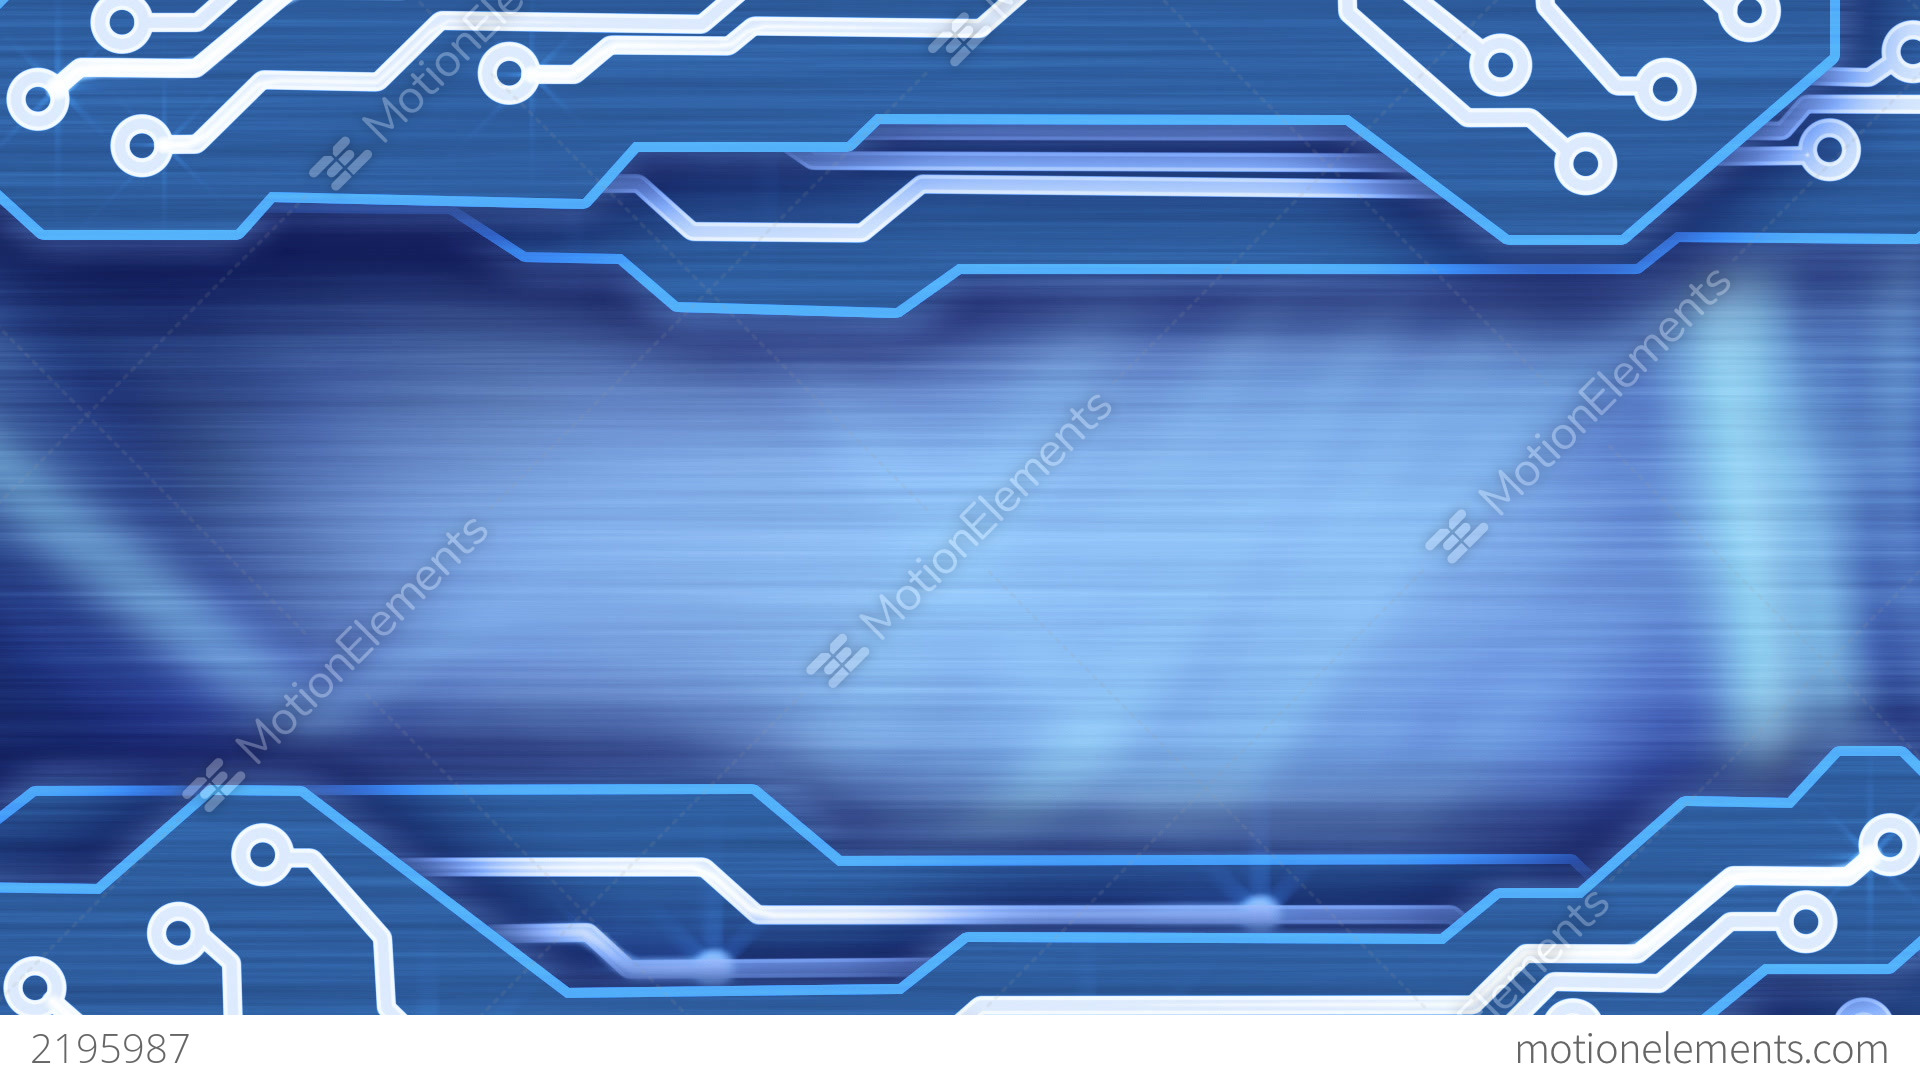 Futuristic Clip Art Free Clipart Vector Design Circuit Board Cpu Royalty Stock Photo Image 24475895 Electronic Plates Blue Loop Background Time Machine Drawings